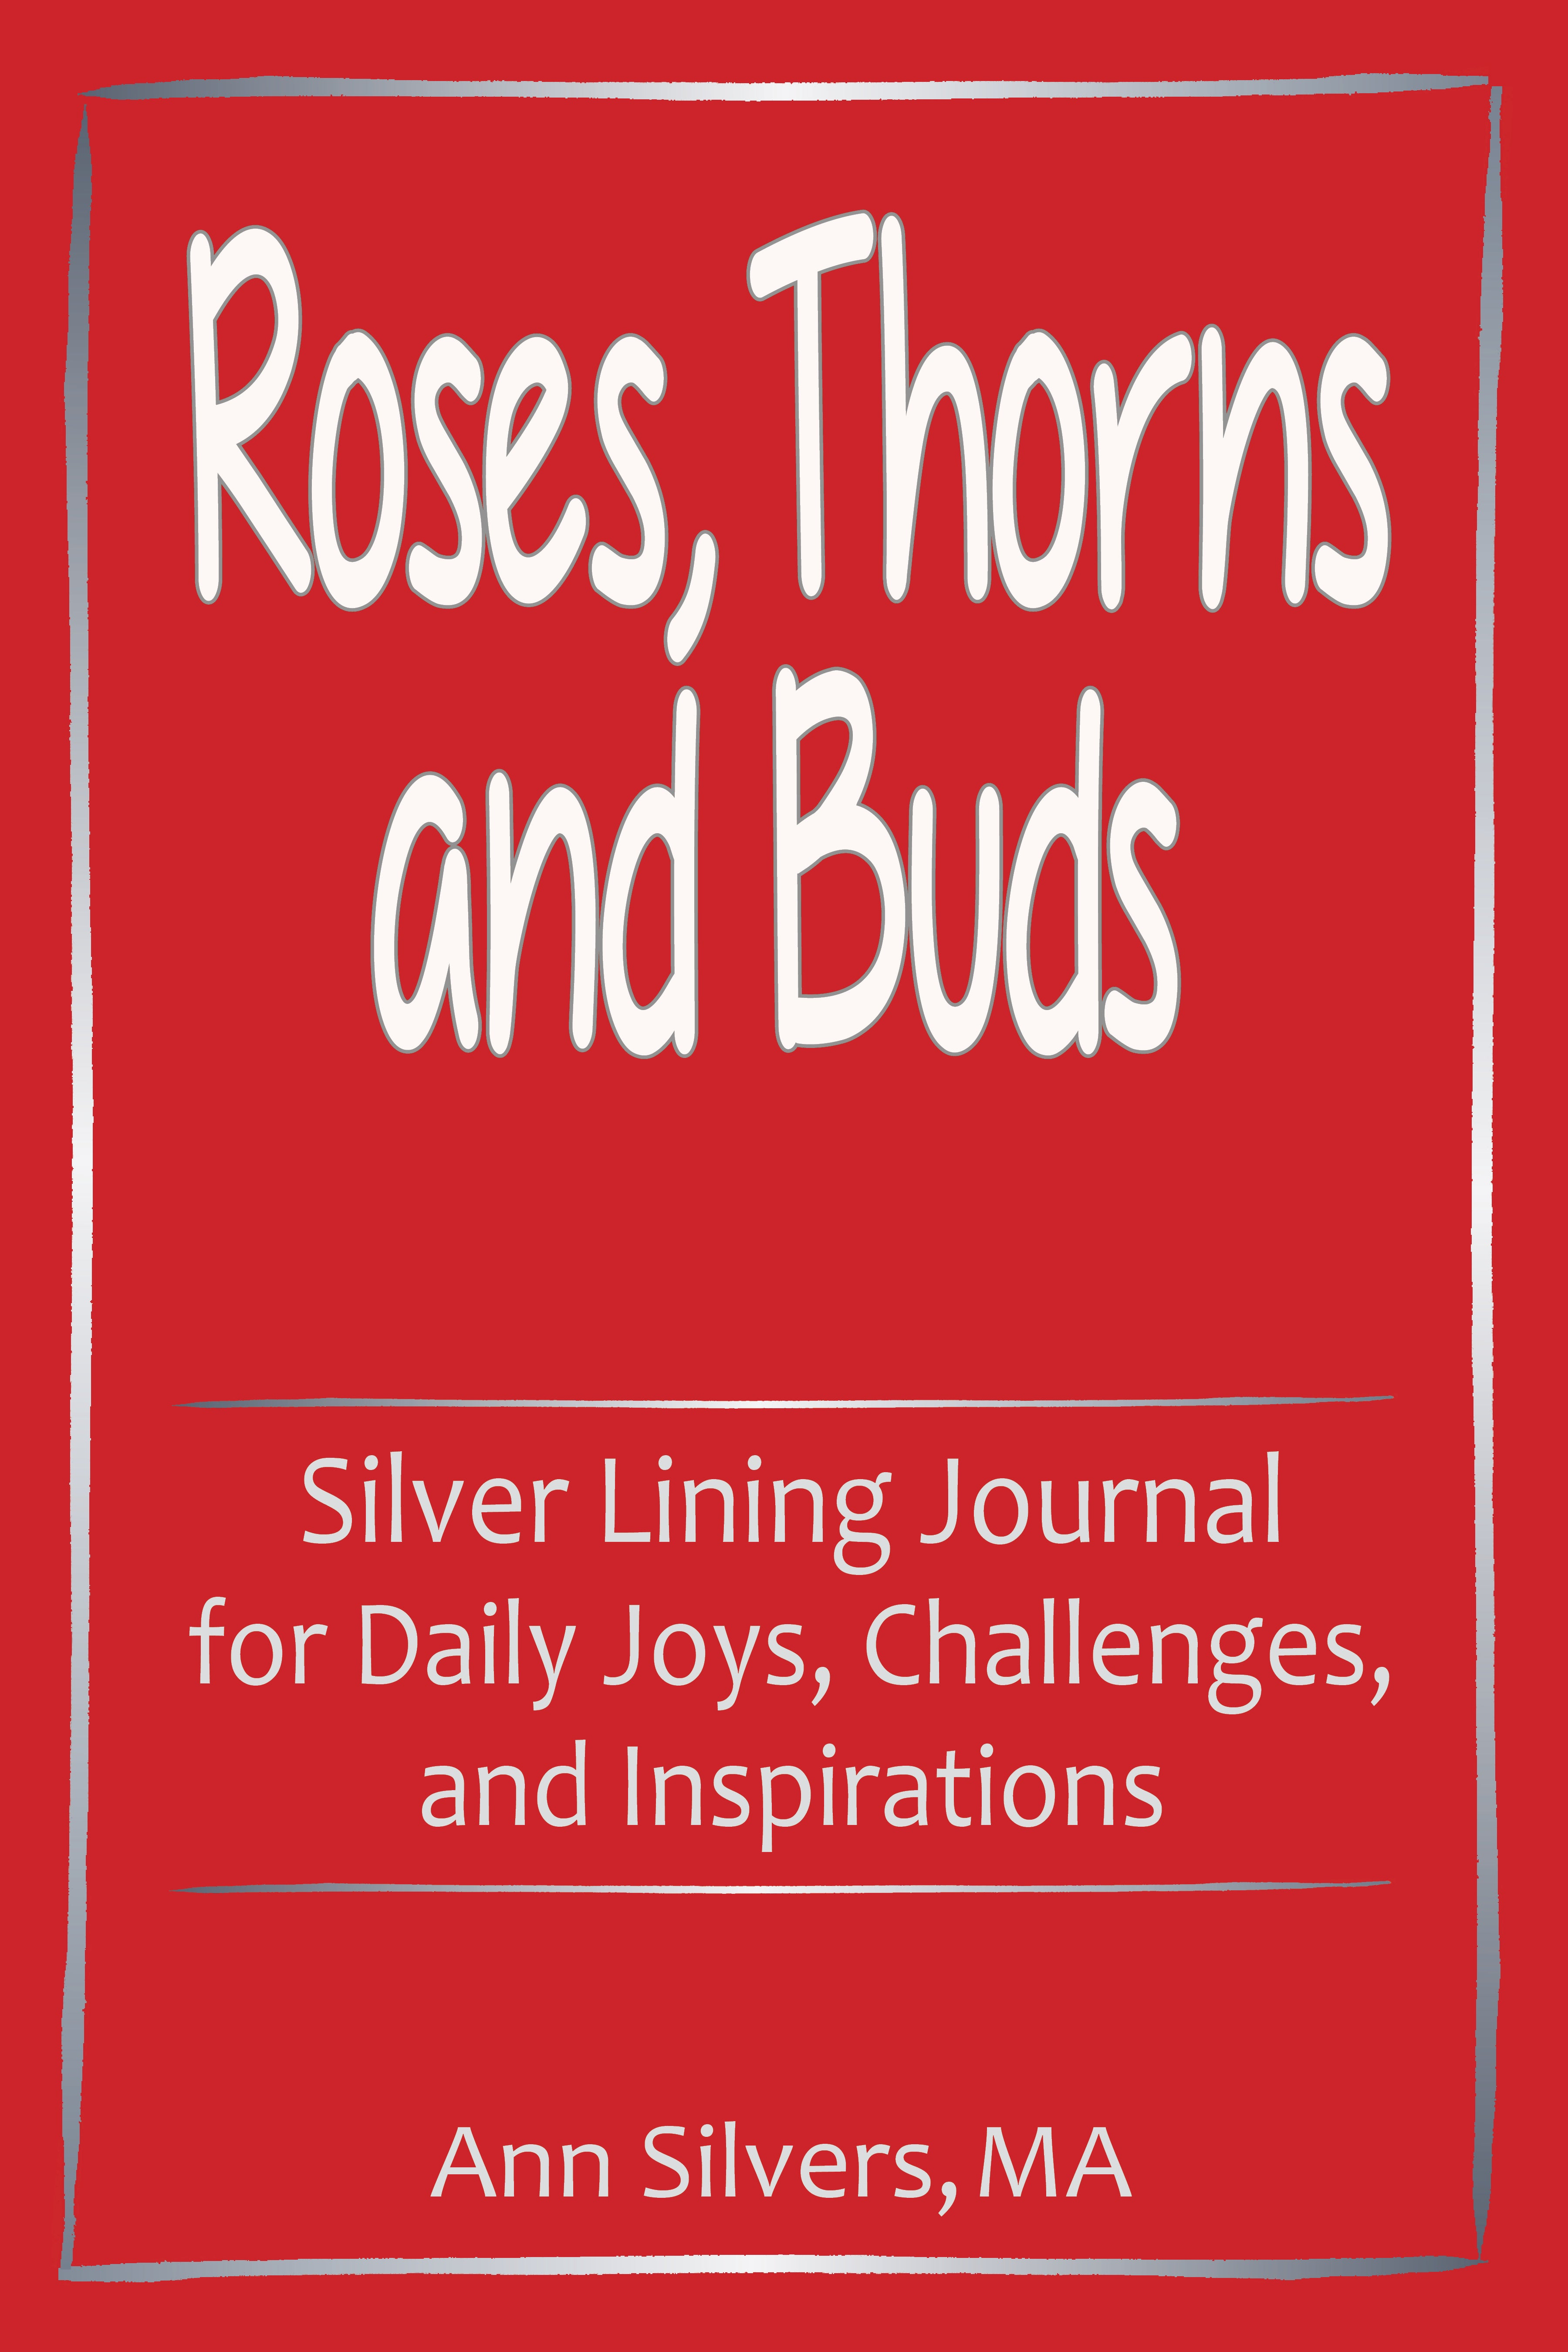 Roses, Thorns and Buds Silver Lining Journal for Daily Joys, Challenges and Inspirations